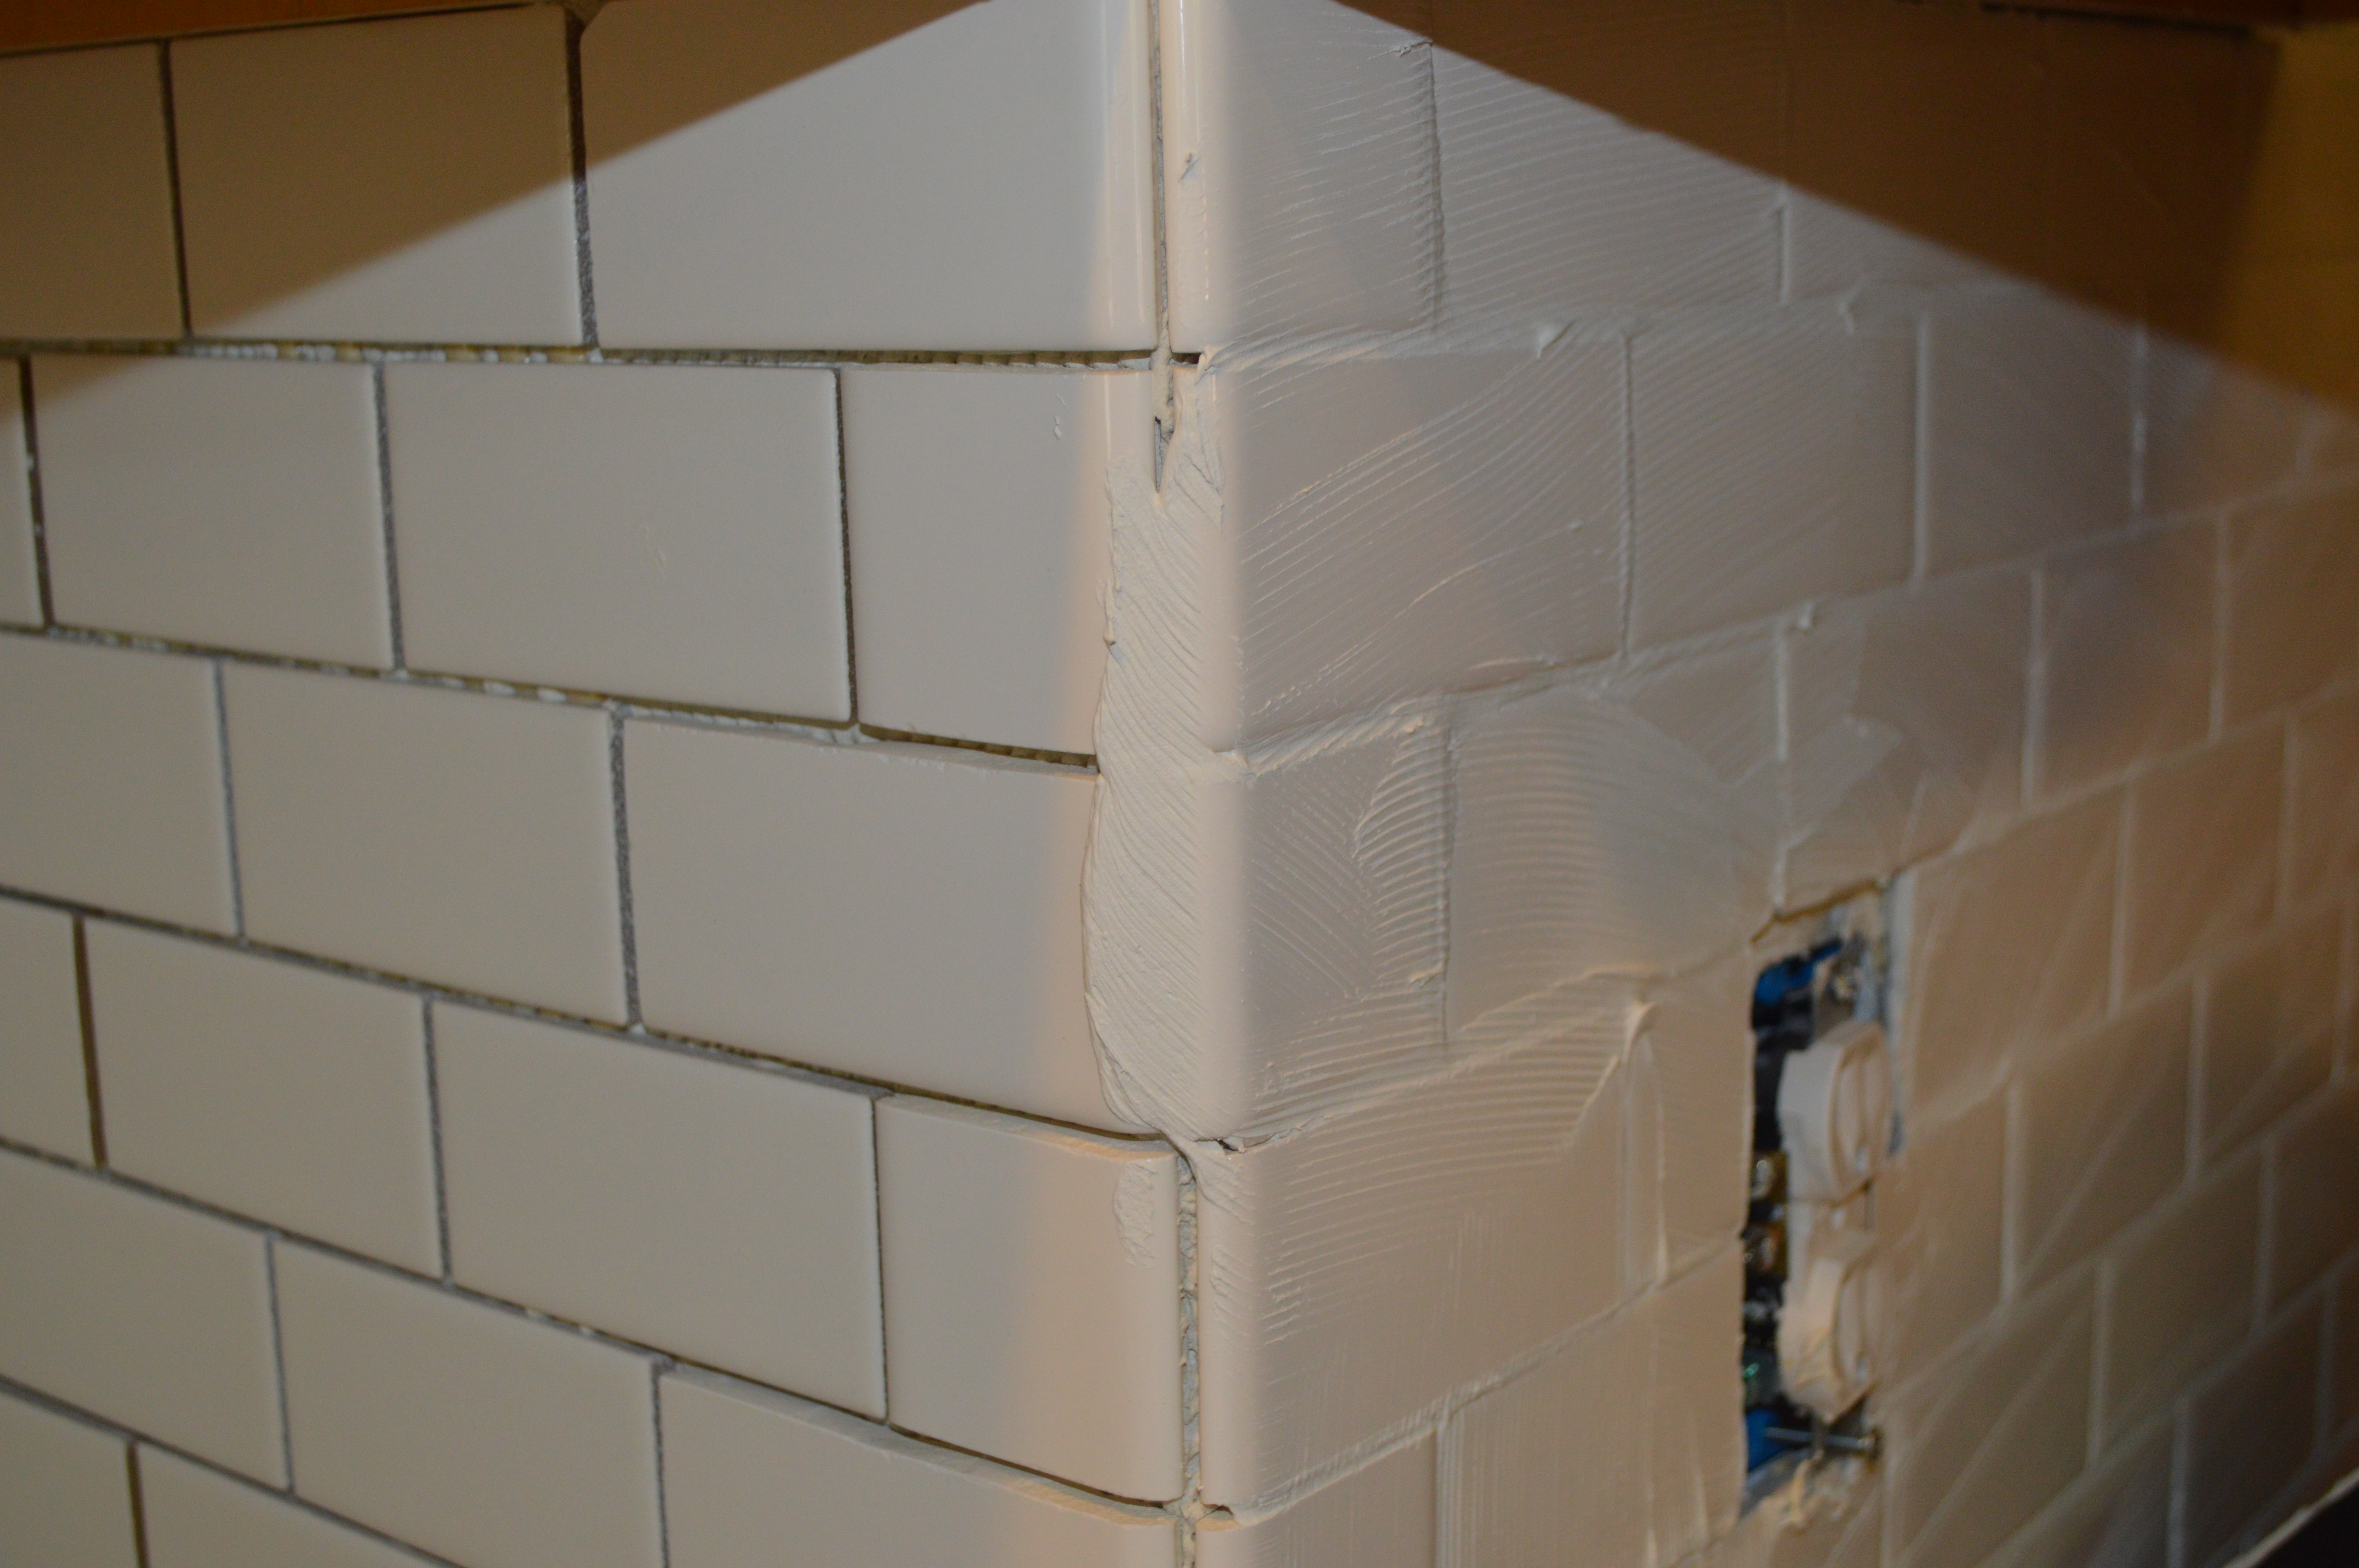 How Long Before Grouting Wall Tiles